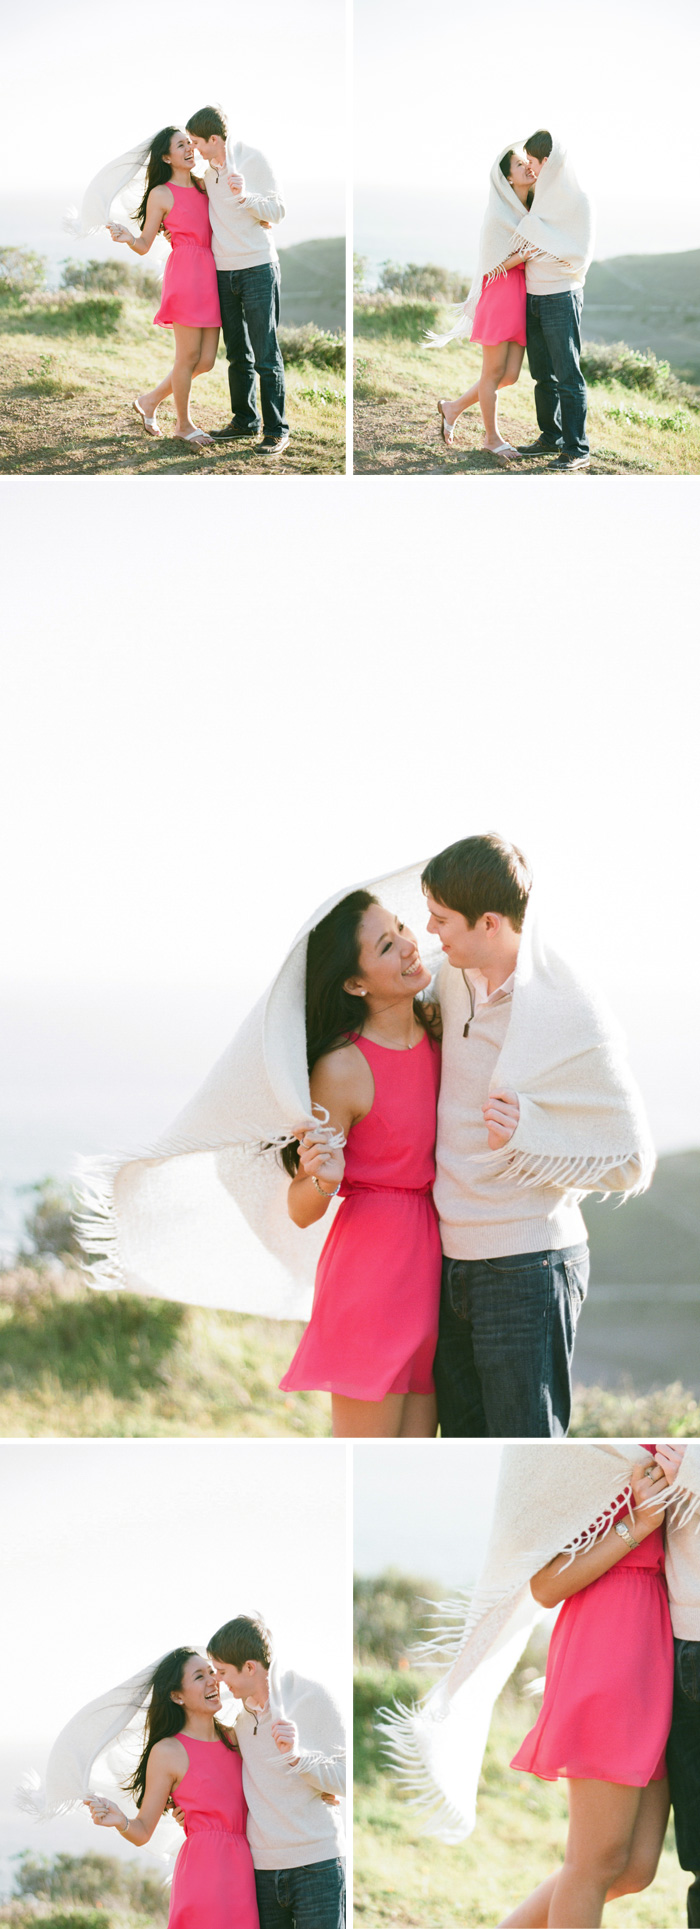 Sylvie-Gil-Engagement-Film-Photography-pink-couple-blanket.jpg